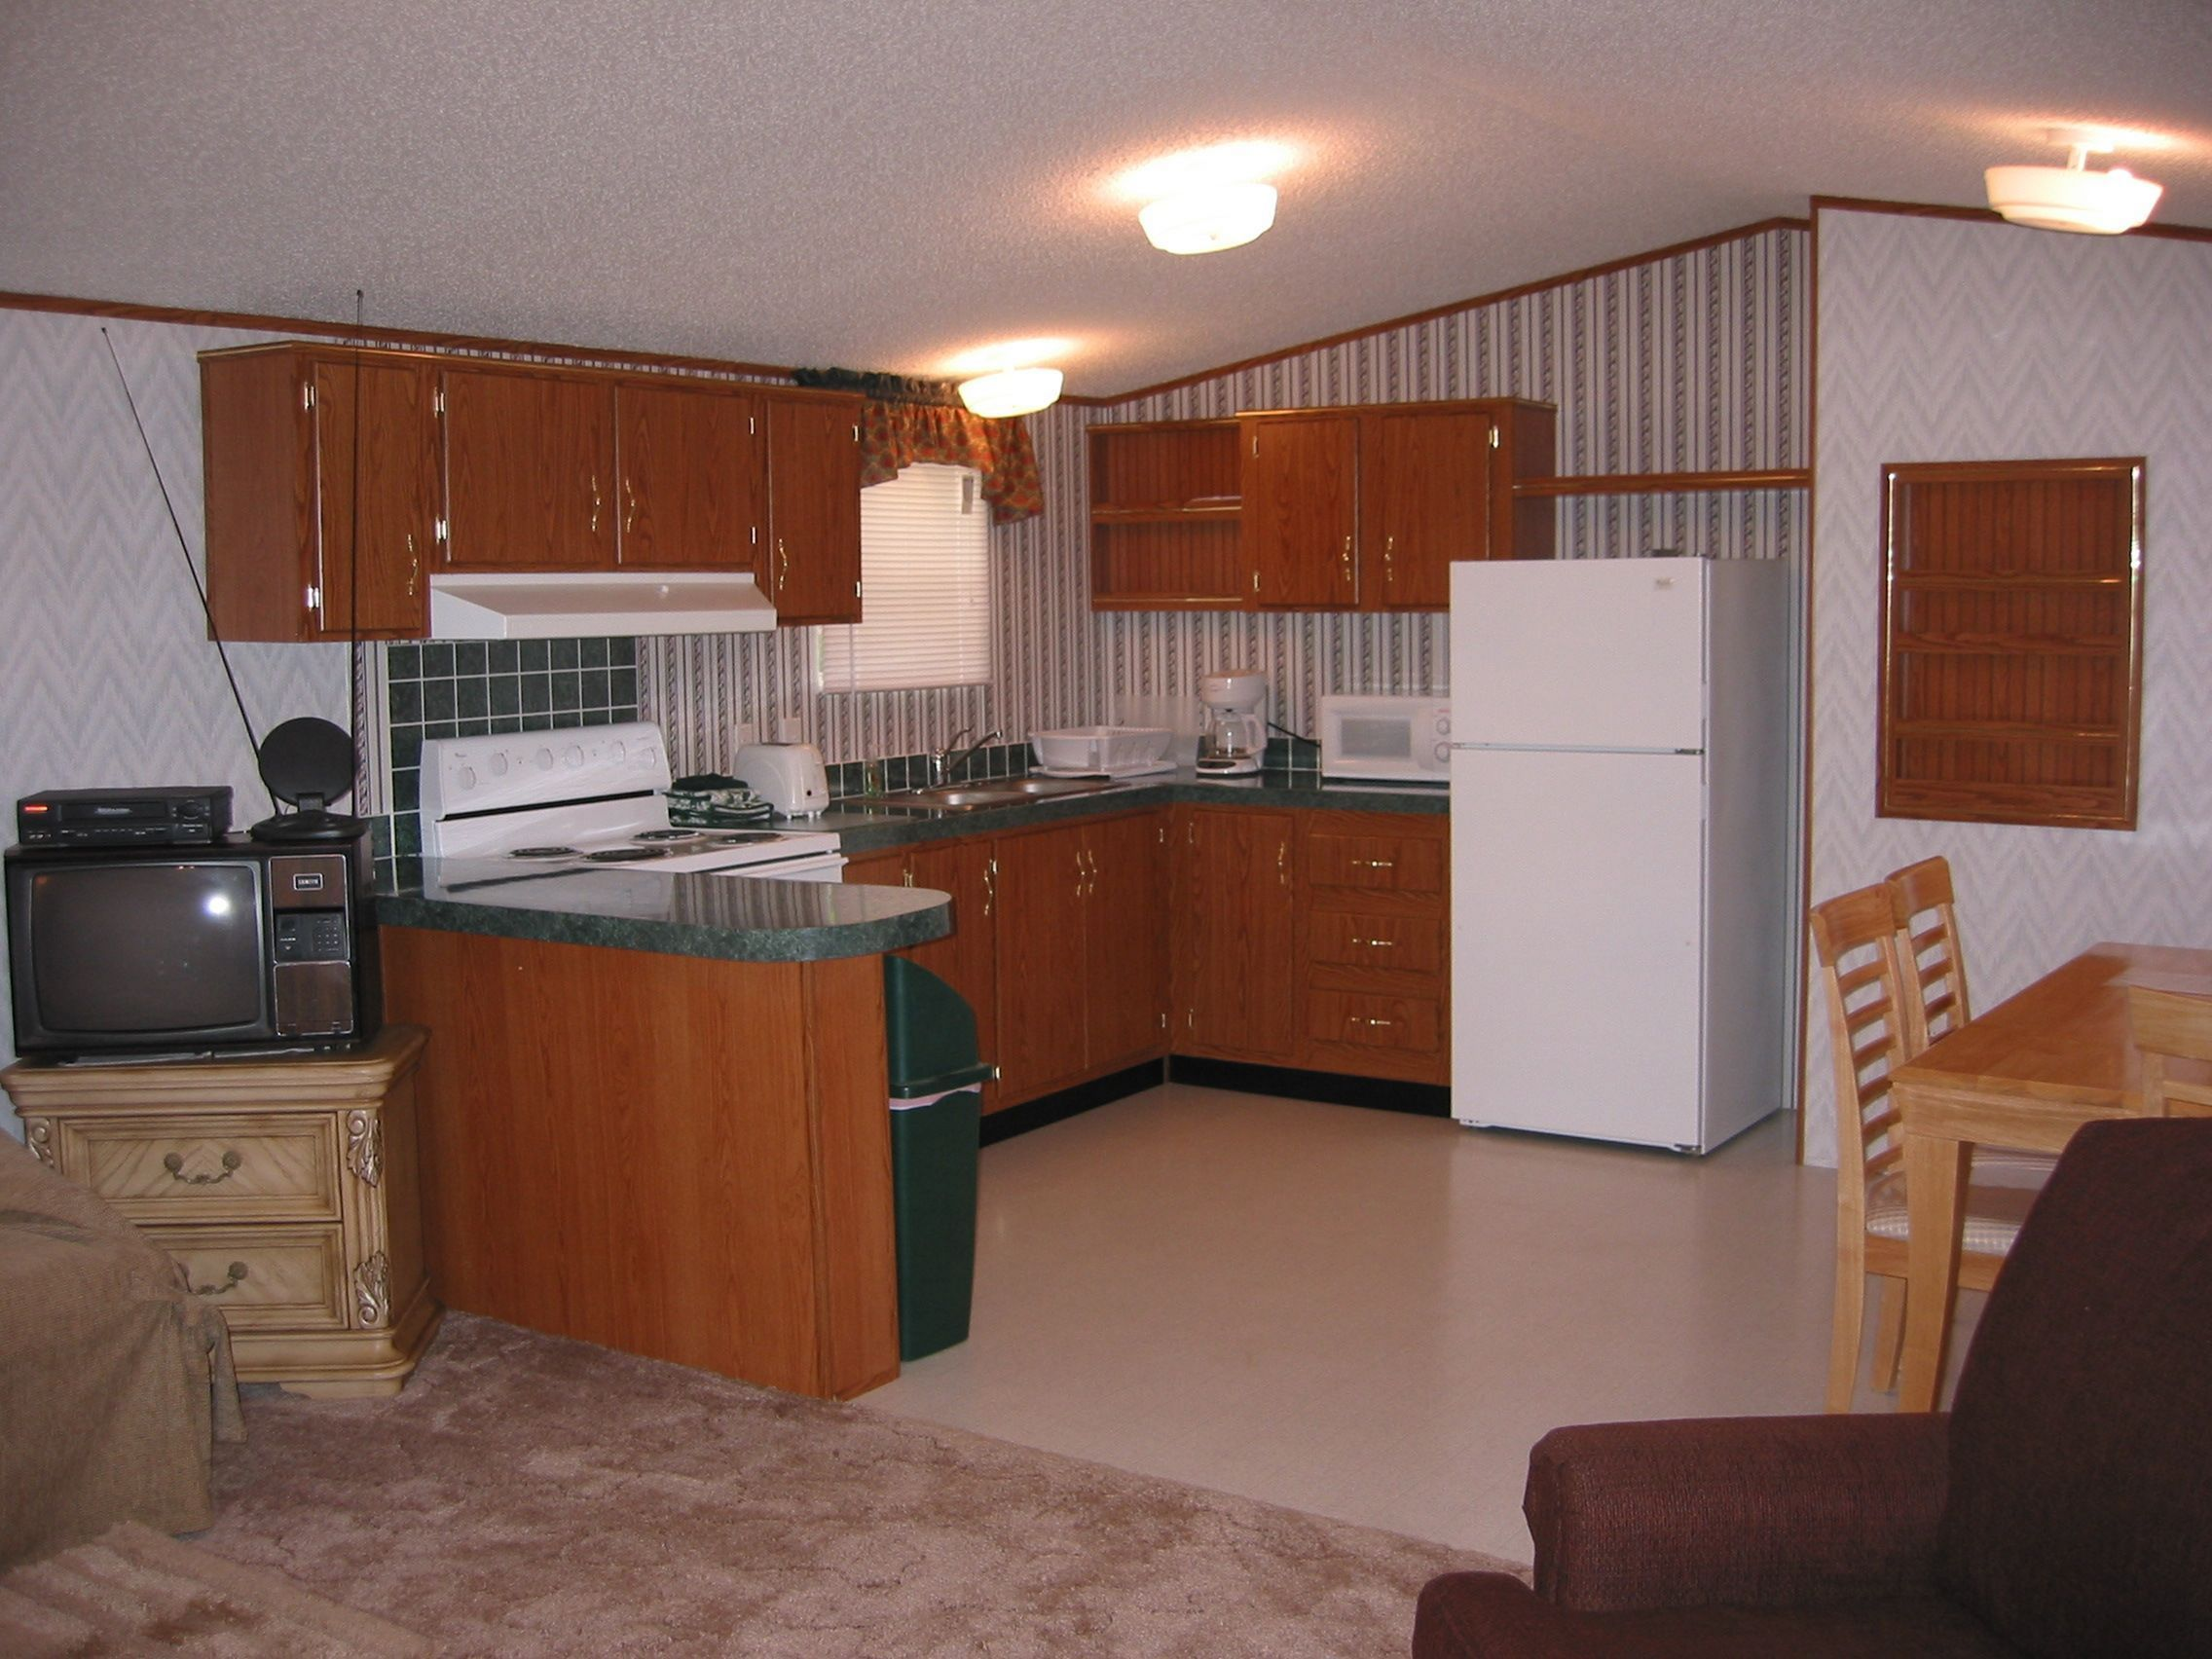 Great Idea 15 Top And Inexpensive Mobile Home Remodel Ideas https//smartrvcamper.com/1…   Cheap ...